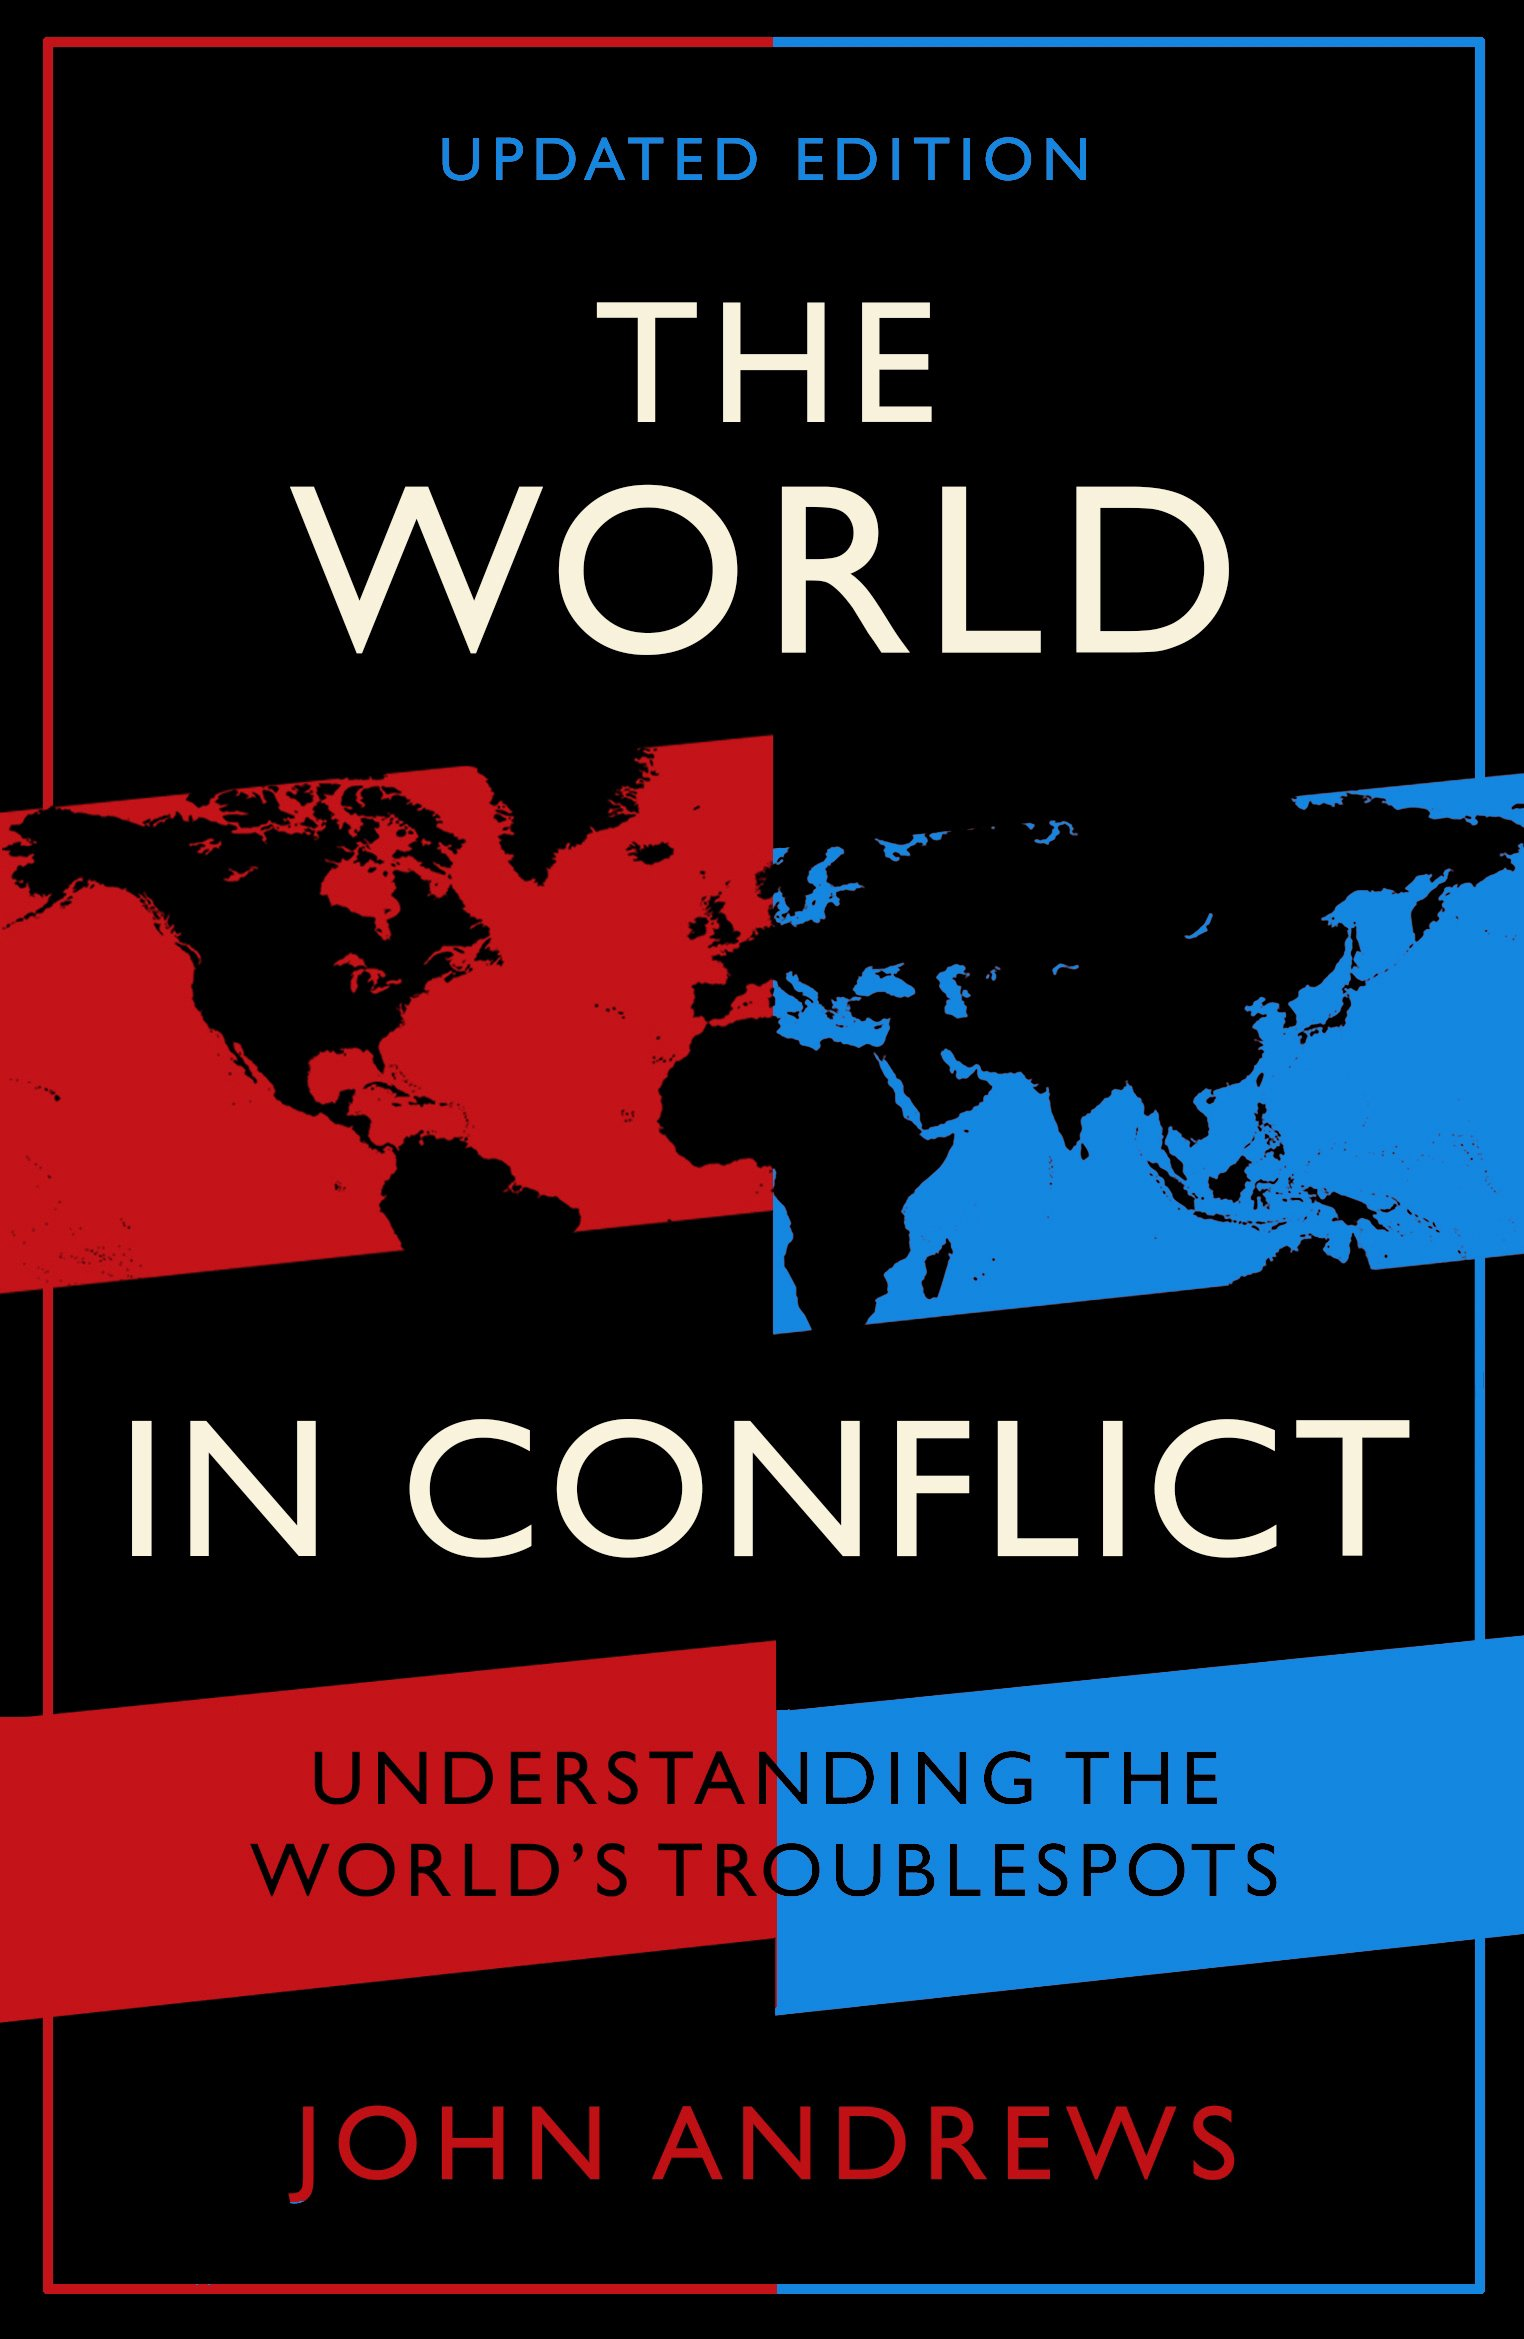 The world in conflict understanding the worlds troublespots the world in conflict understanding the worlds troublespots amazon john andrews 9781788160032 books gumiabroncs Image collections